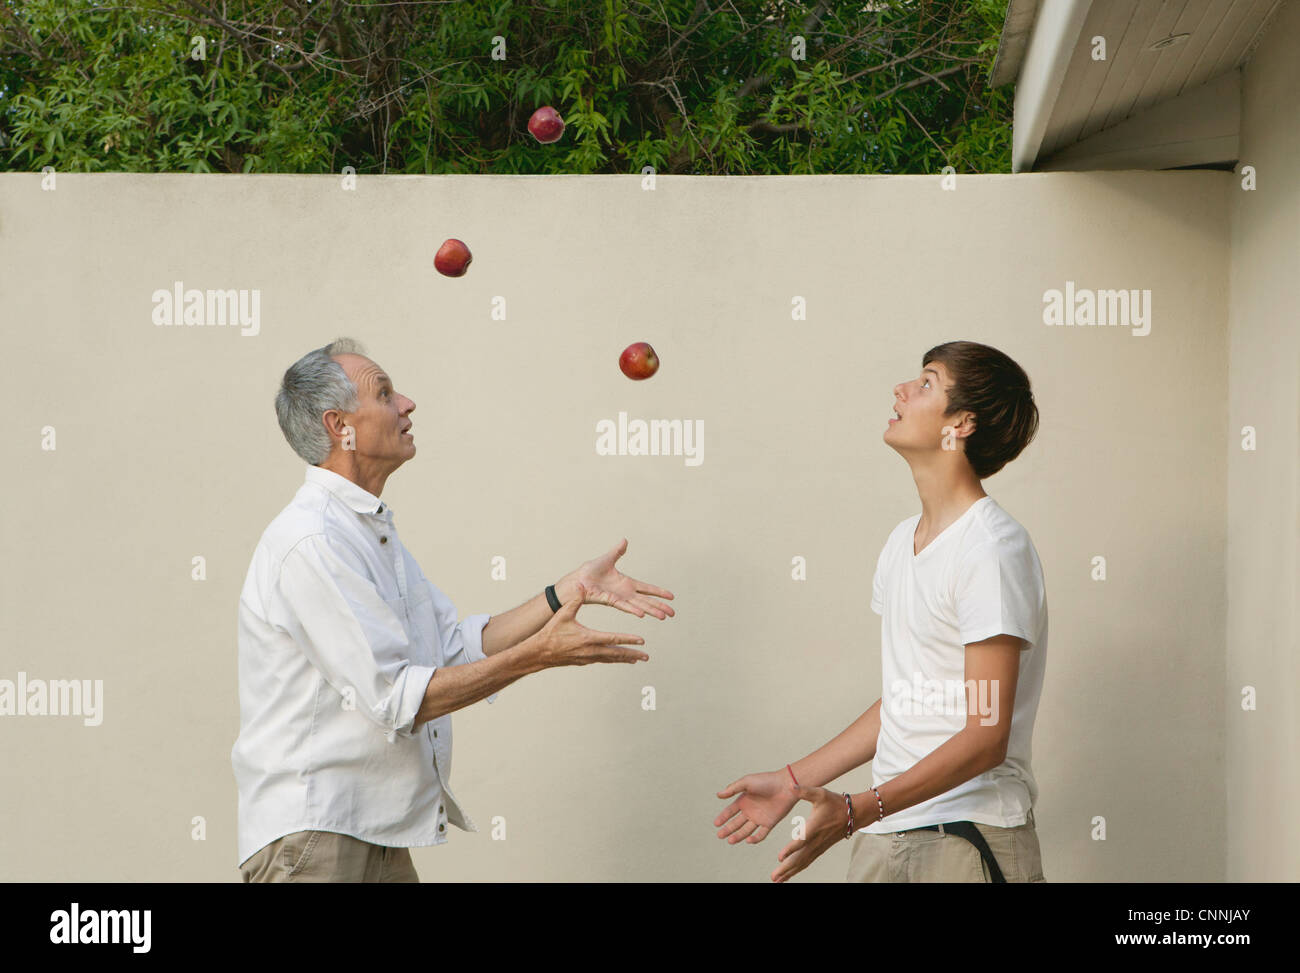 Father teaching son to juggle outdoors - Stock Image